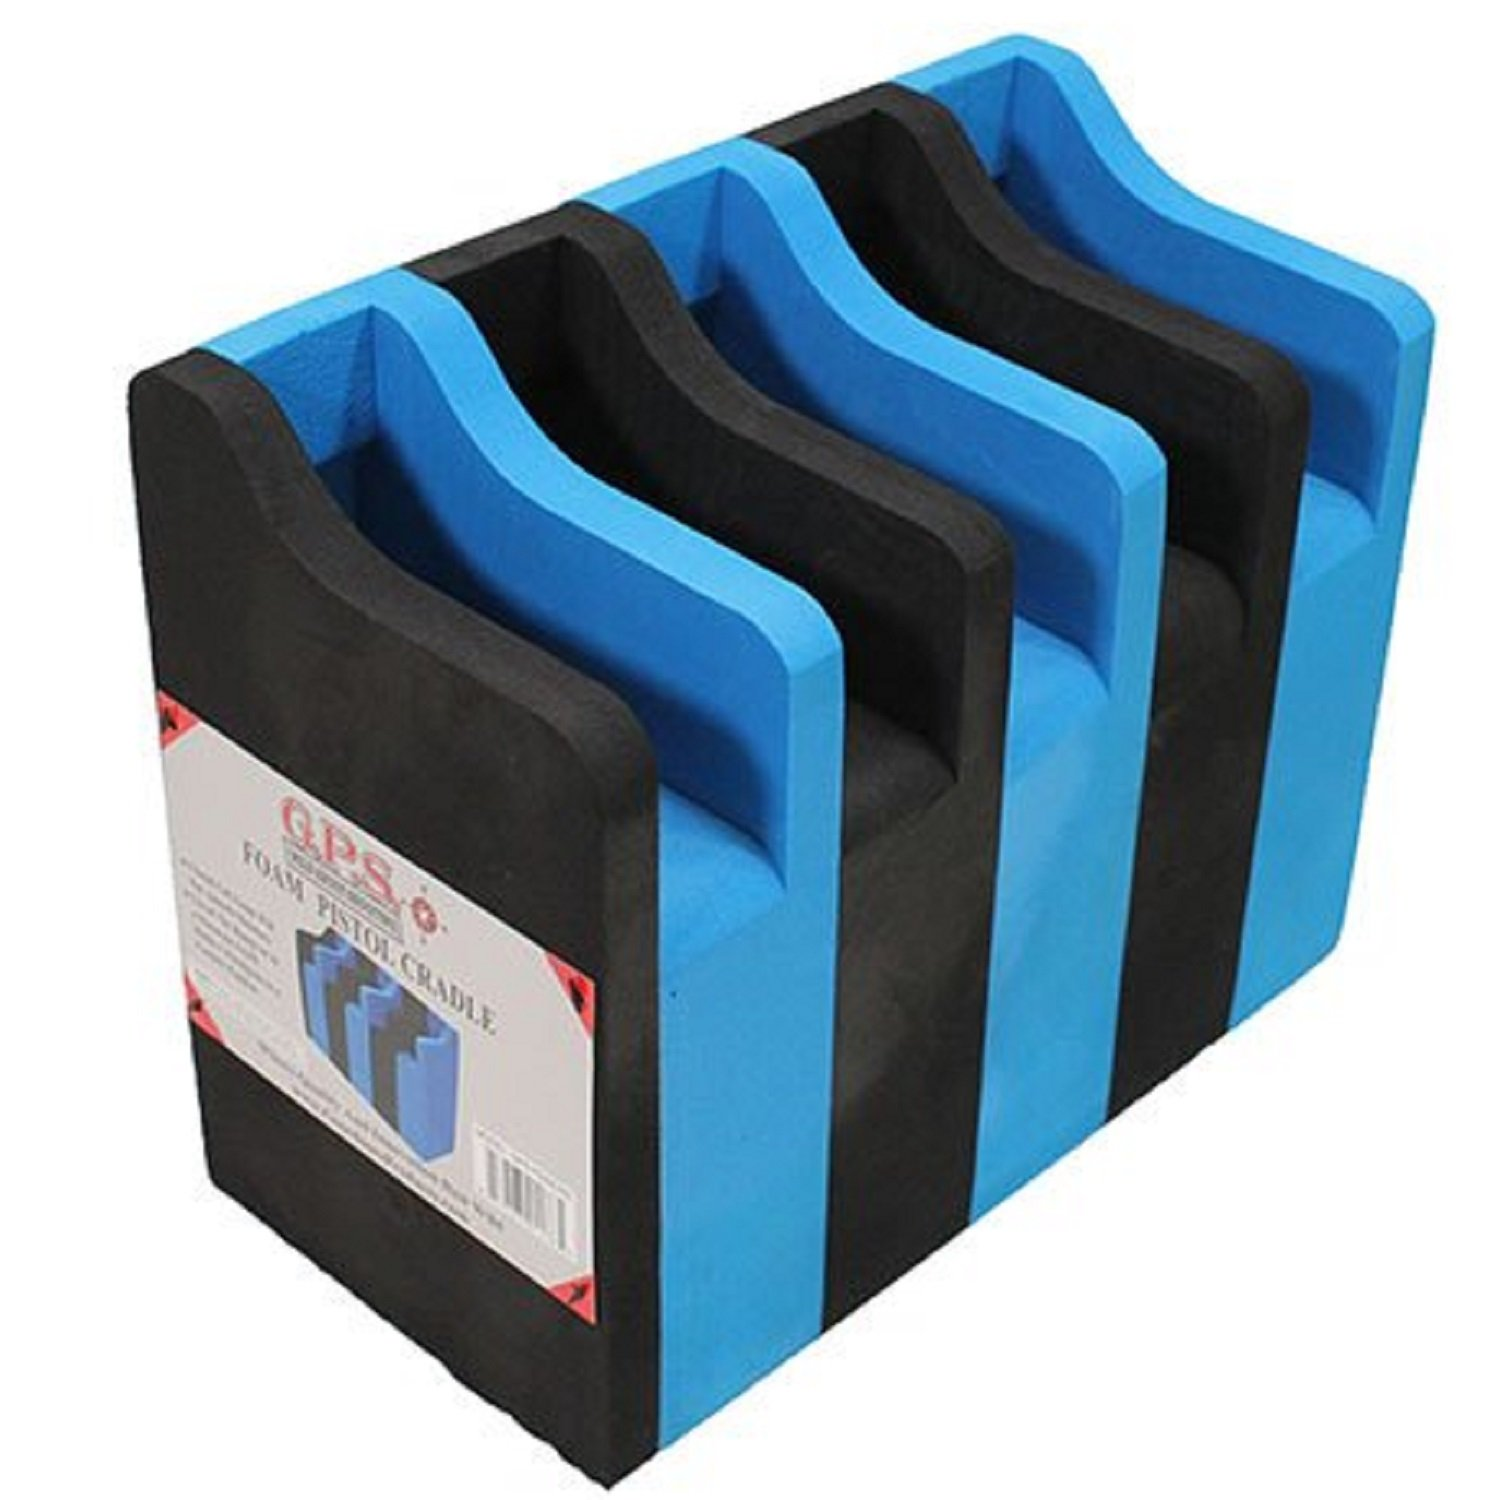 G.P.S. 5 Pistol Soft Cradle, Black/Blue, One Size